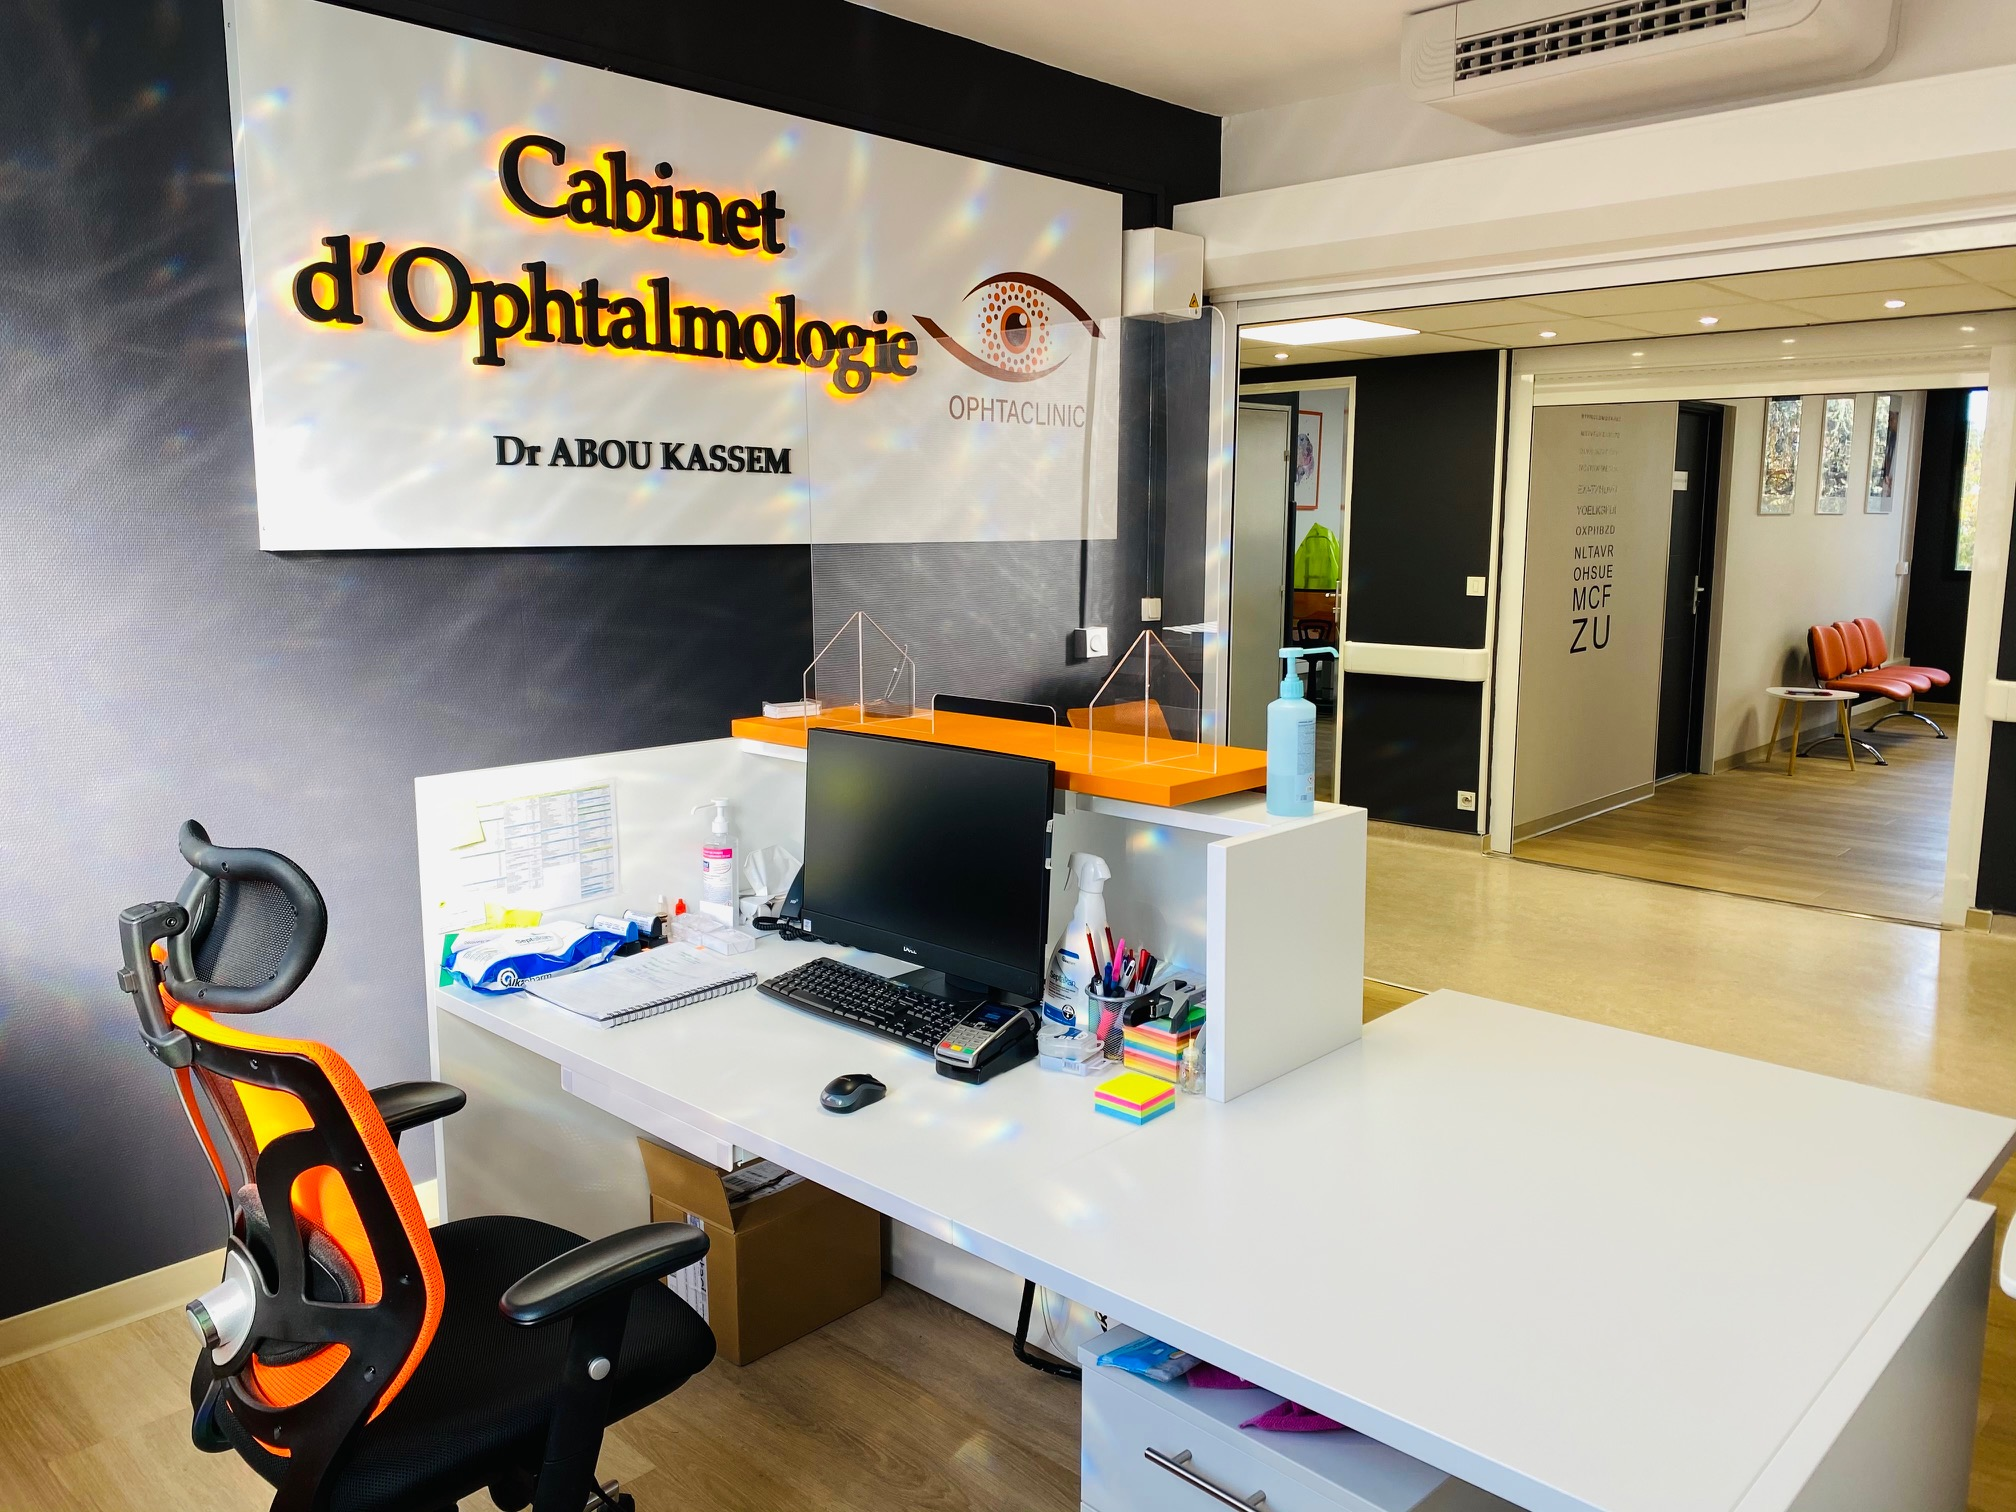 Centre ophtalmologie ales : ophtaclinic